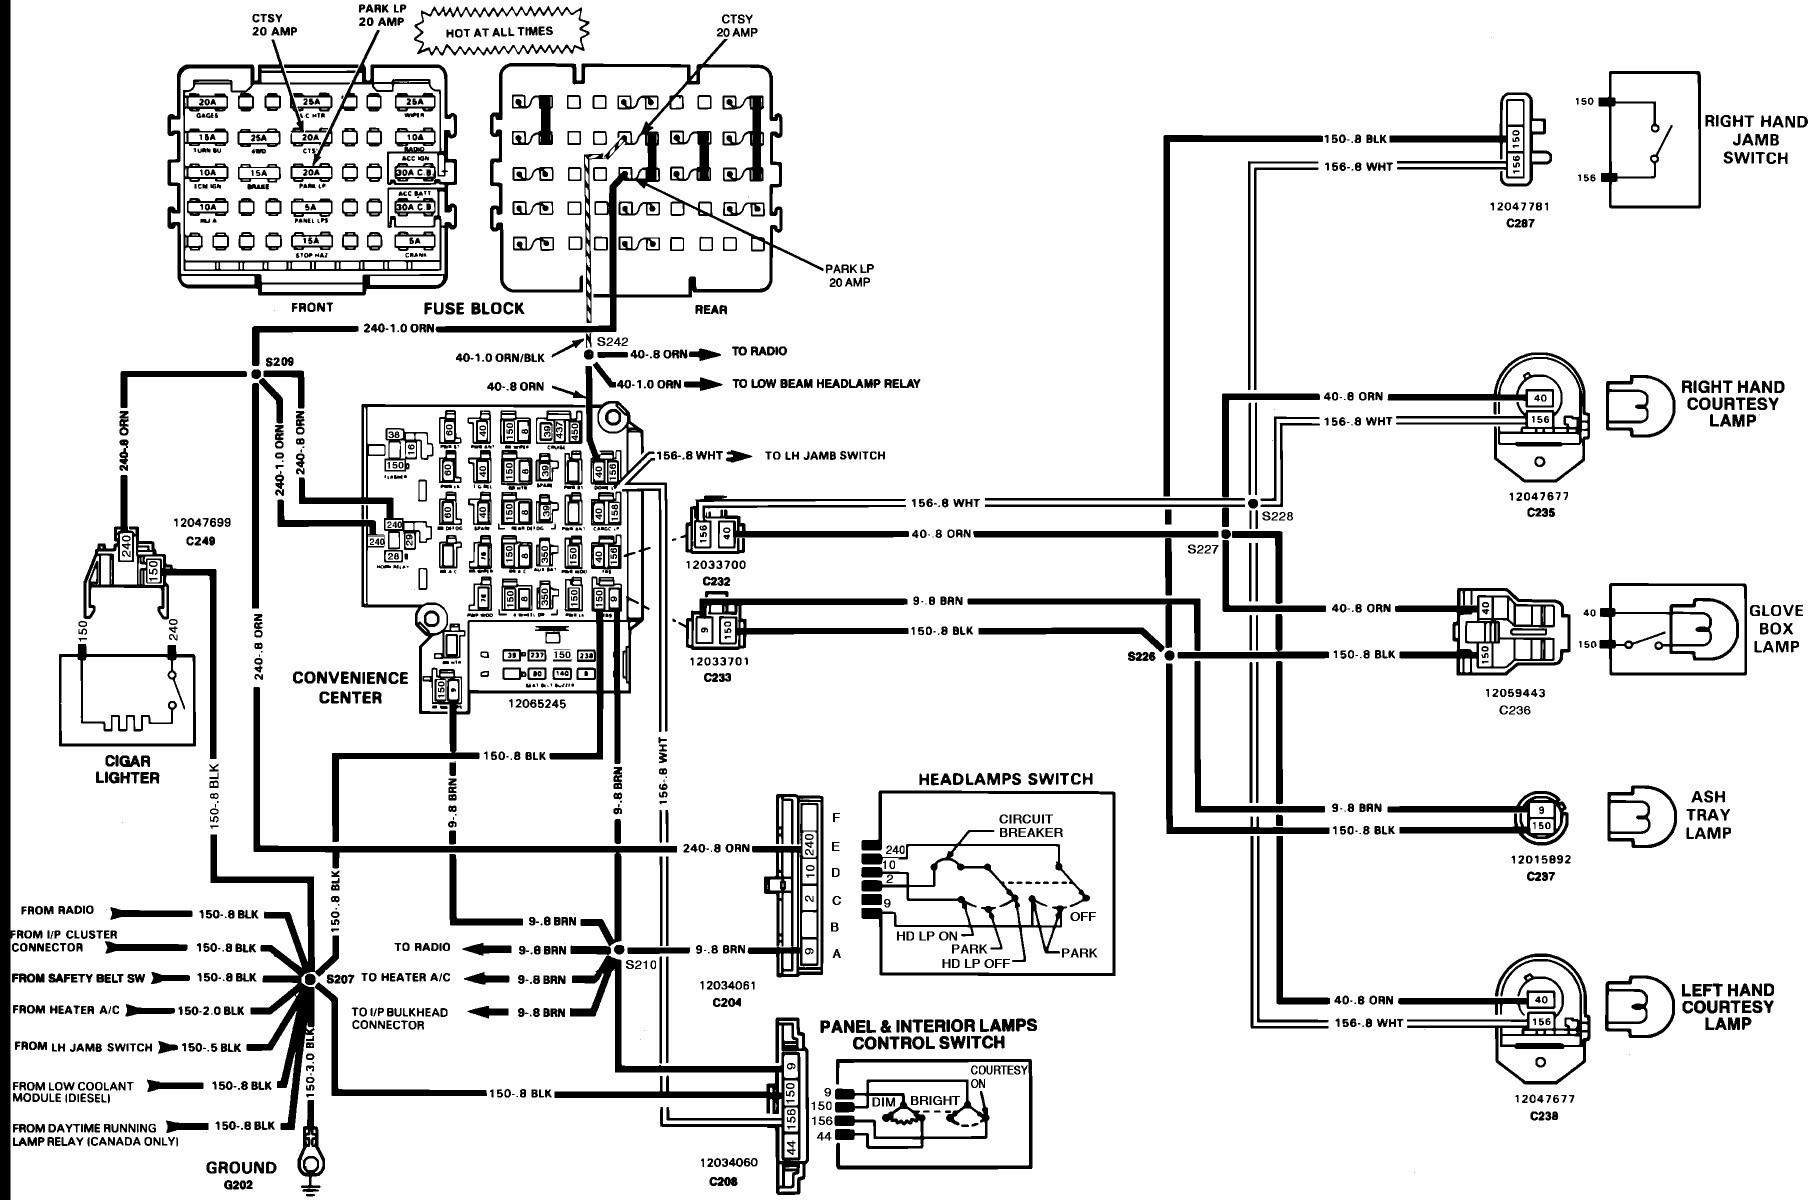 Bmw Z3 Engine Diagram | technical wiring diagram  Bmw Z Ac Wiring Diagram on bmw m6 wiring diagram, bmw z3 wire harness, bmw e90 wiring diagram, bmw z3 power, bmw z3 relay location, bmw z3 stereo upgrade, bmw z3 oil filter, bmw 545i wiring diagram, bmw z3 rear speakers, bmw z3 alternator, bmw x3 wiring diagram, bmw z3 belt diagram, bmw z3 starter, bmw z3 stereo wiring, bmw 335i wiring diagram, bmw m5 wiring diagram, bmw z3 radiator, bmw e21 wiring diagram, bmw z3 body, bmw z3 horn,